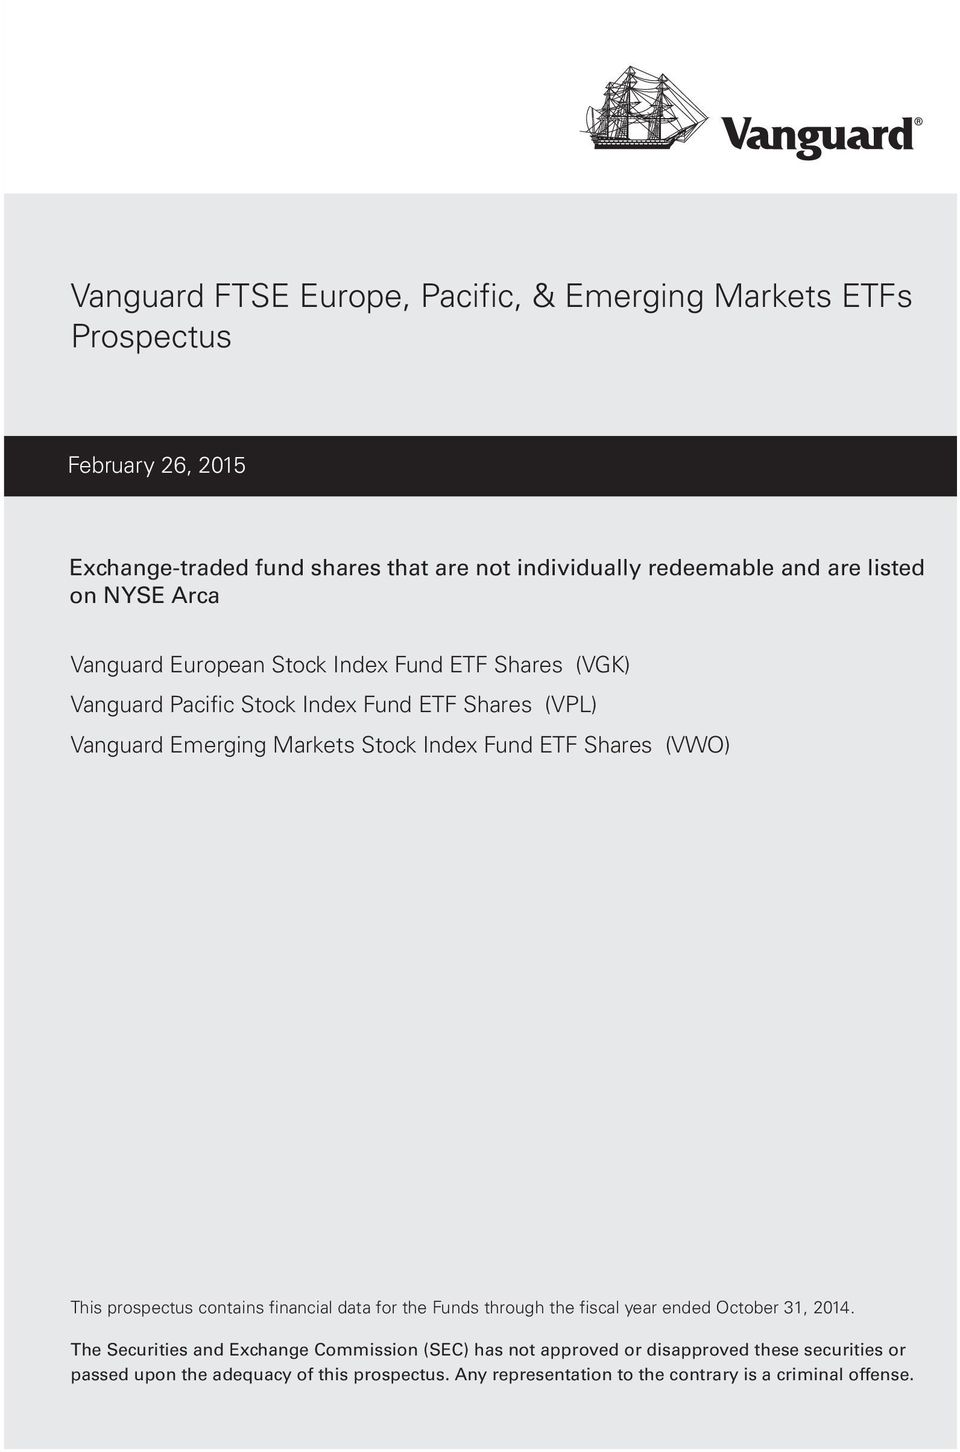 Fund ETF Shares (VWO) This prospectus contains financial data for the Funds through the fiscal year ended October 31, 2014.